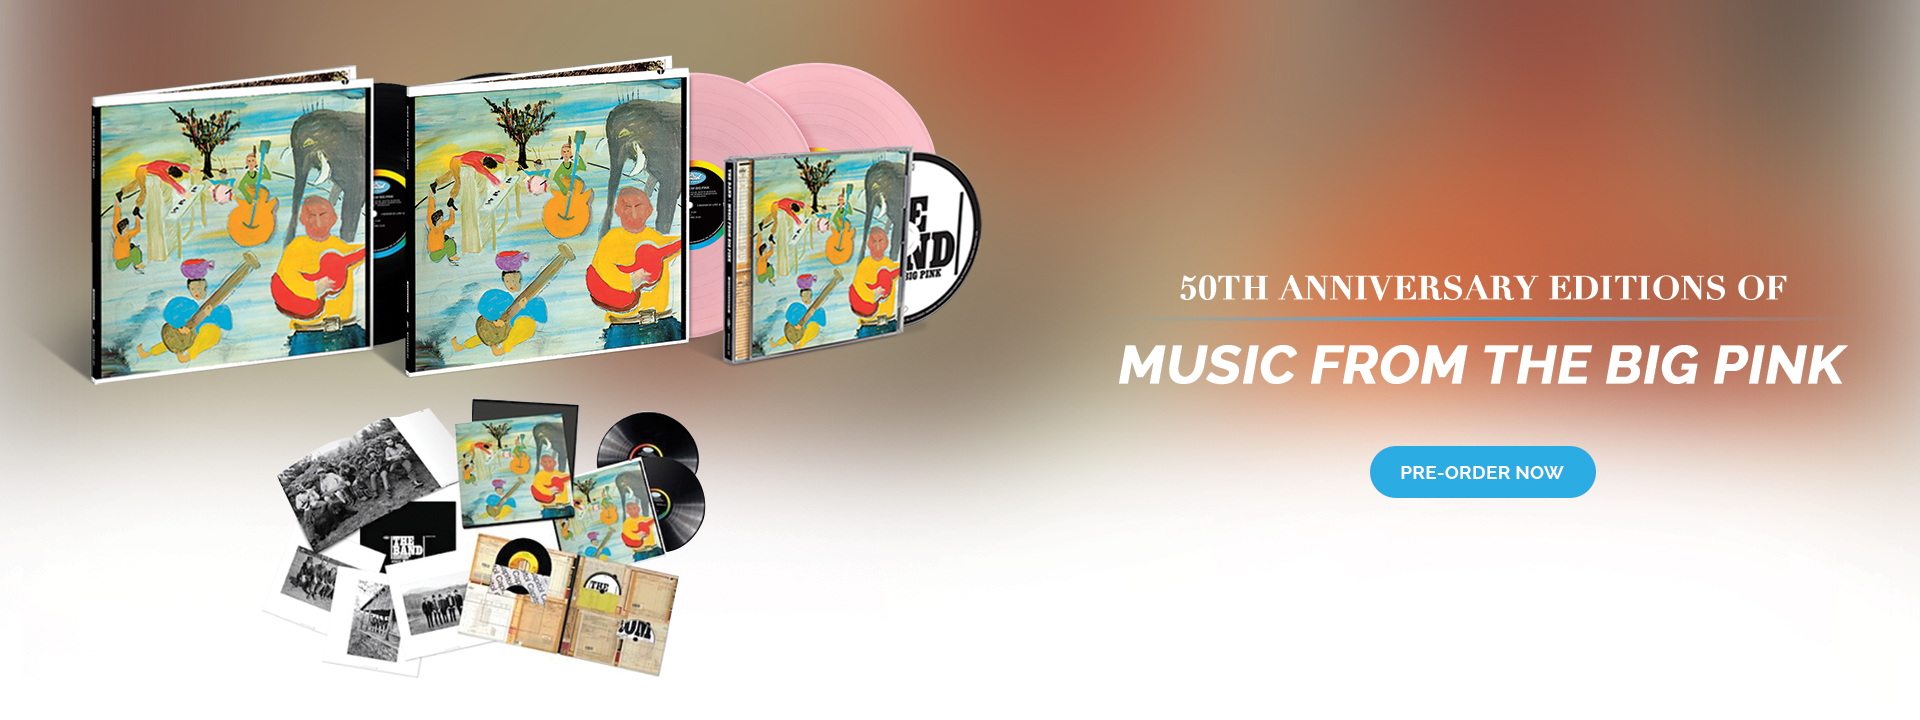 'Music from Big Pink' 50th Anniversary Editions